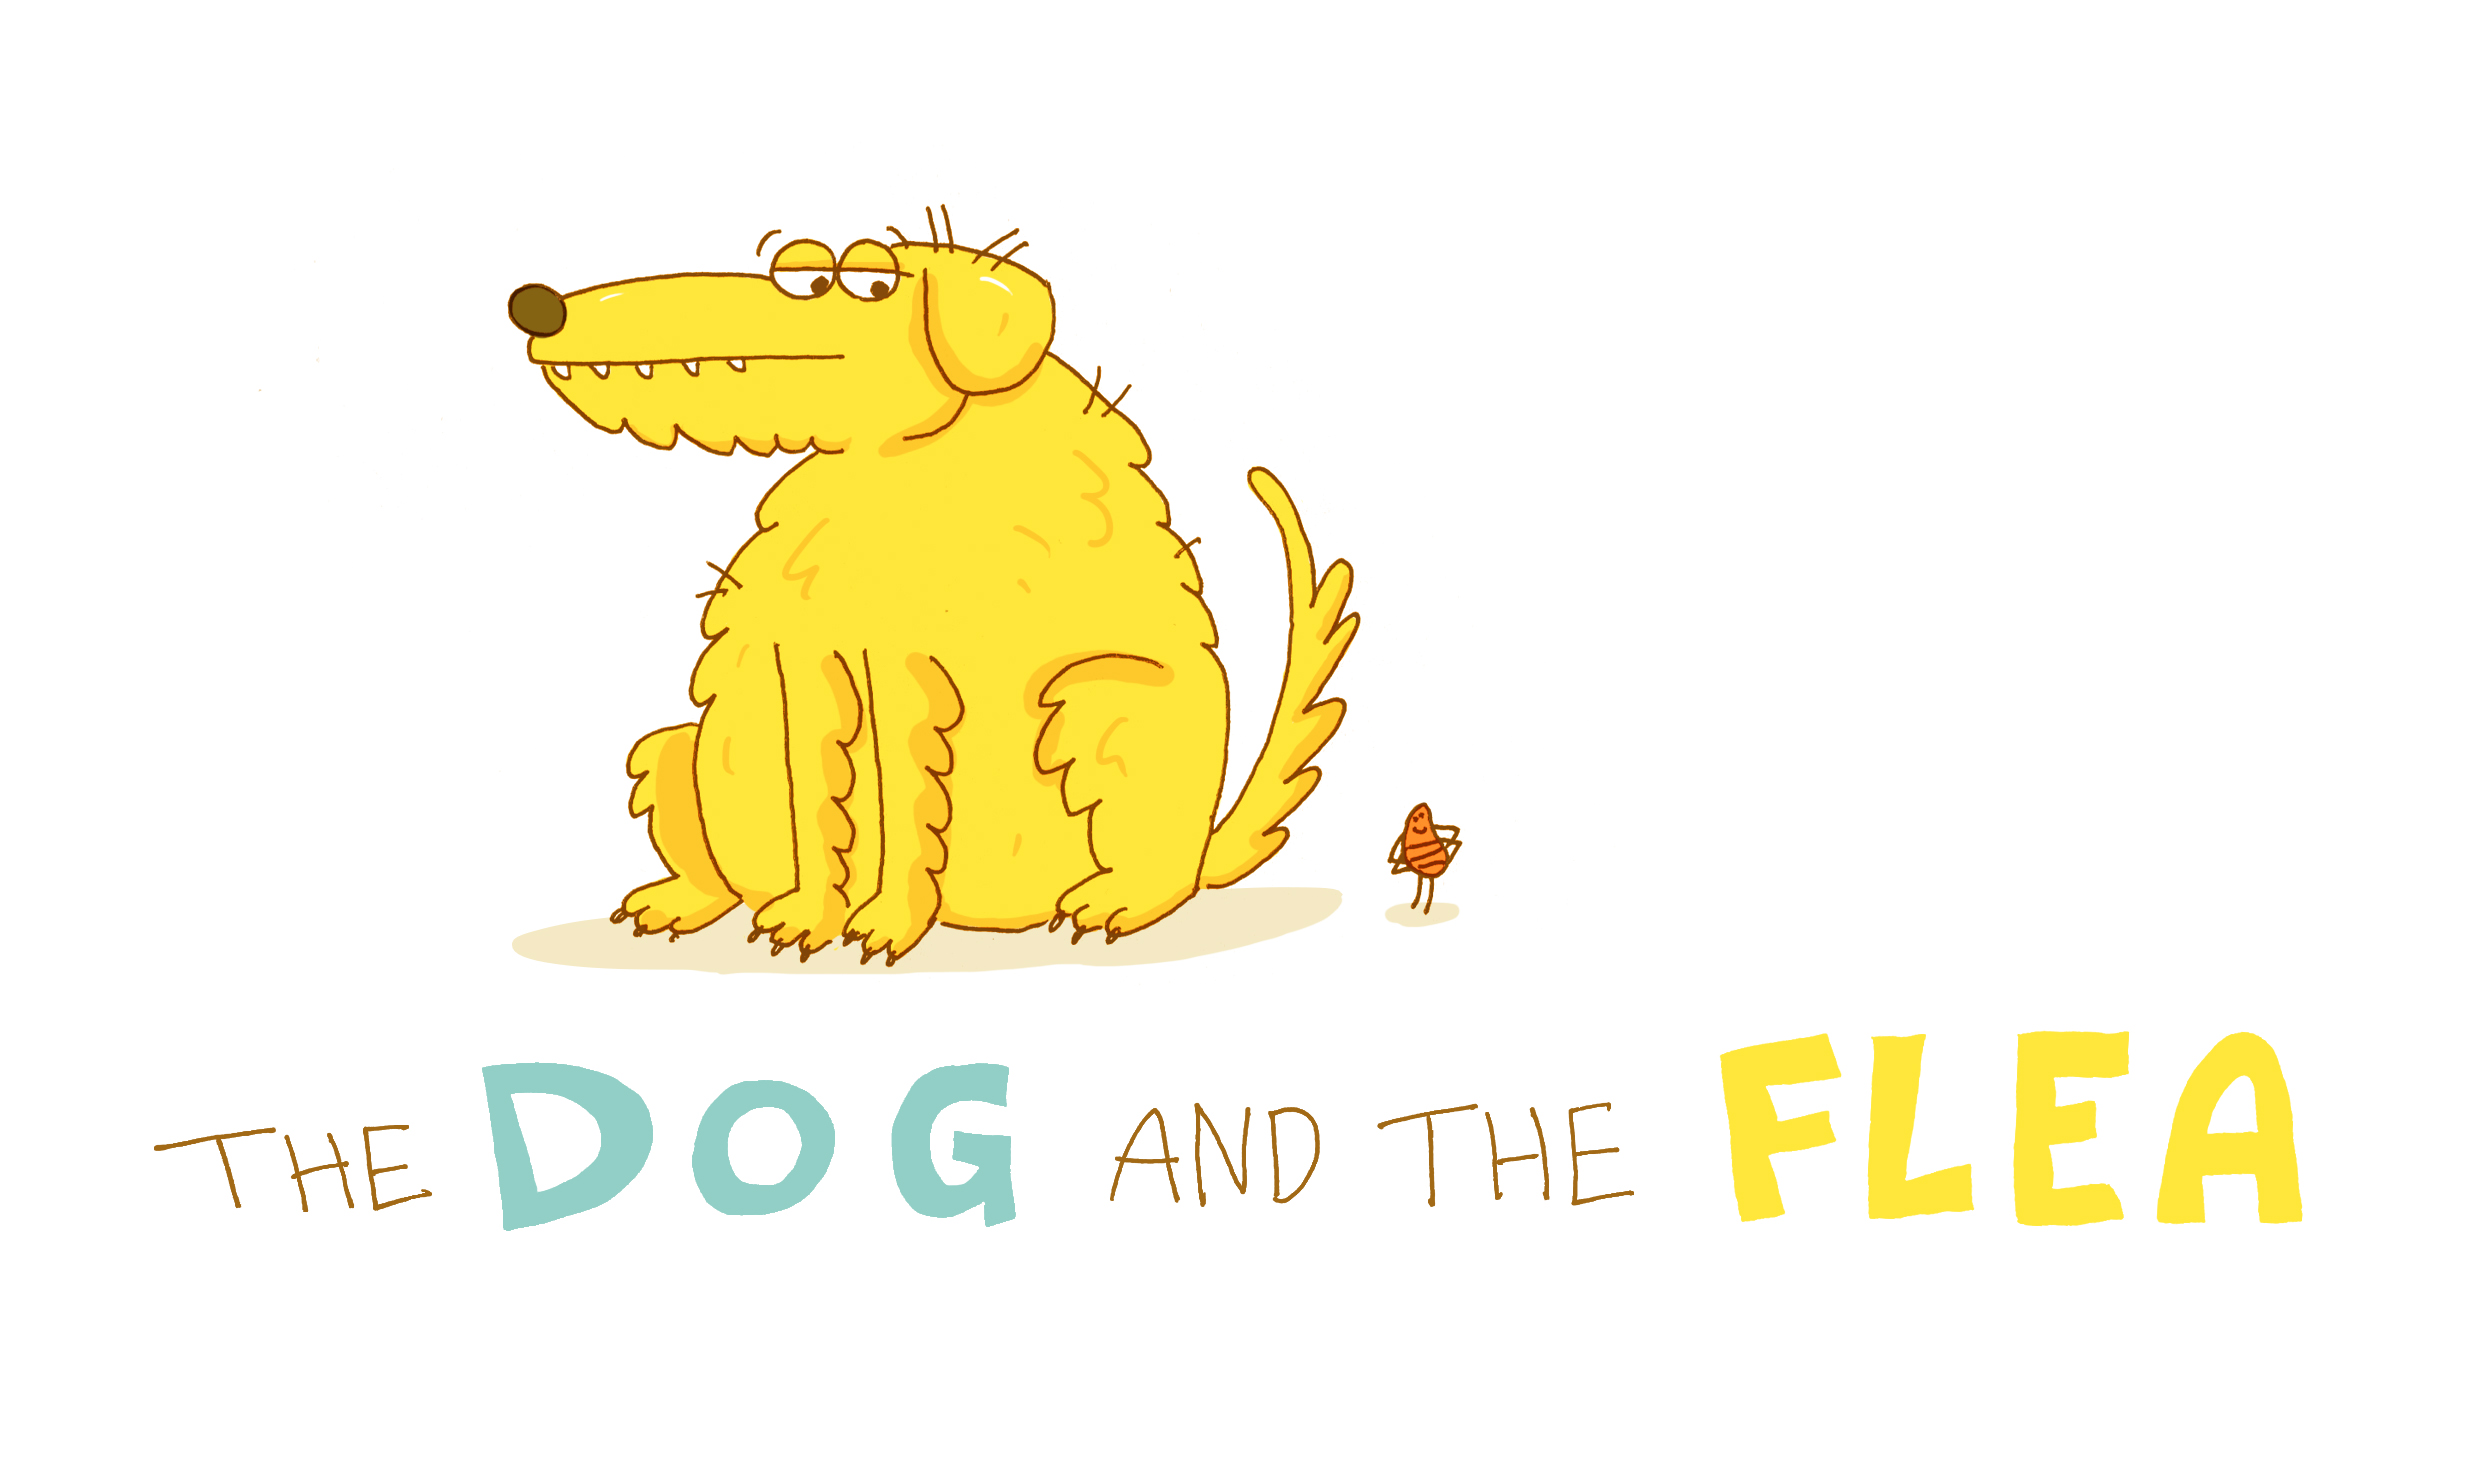 The Dog And The Flea